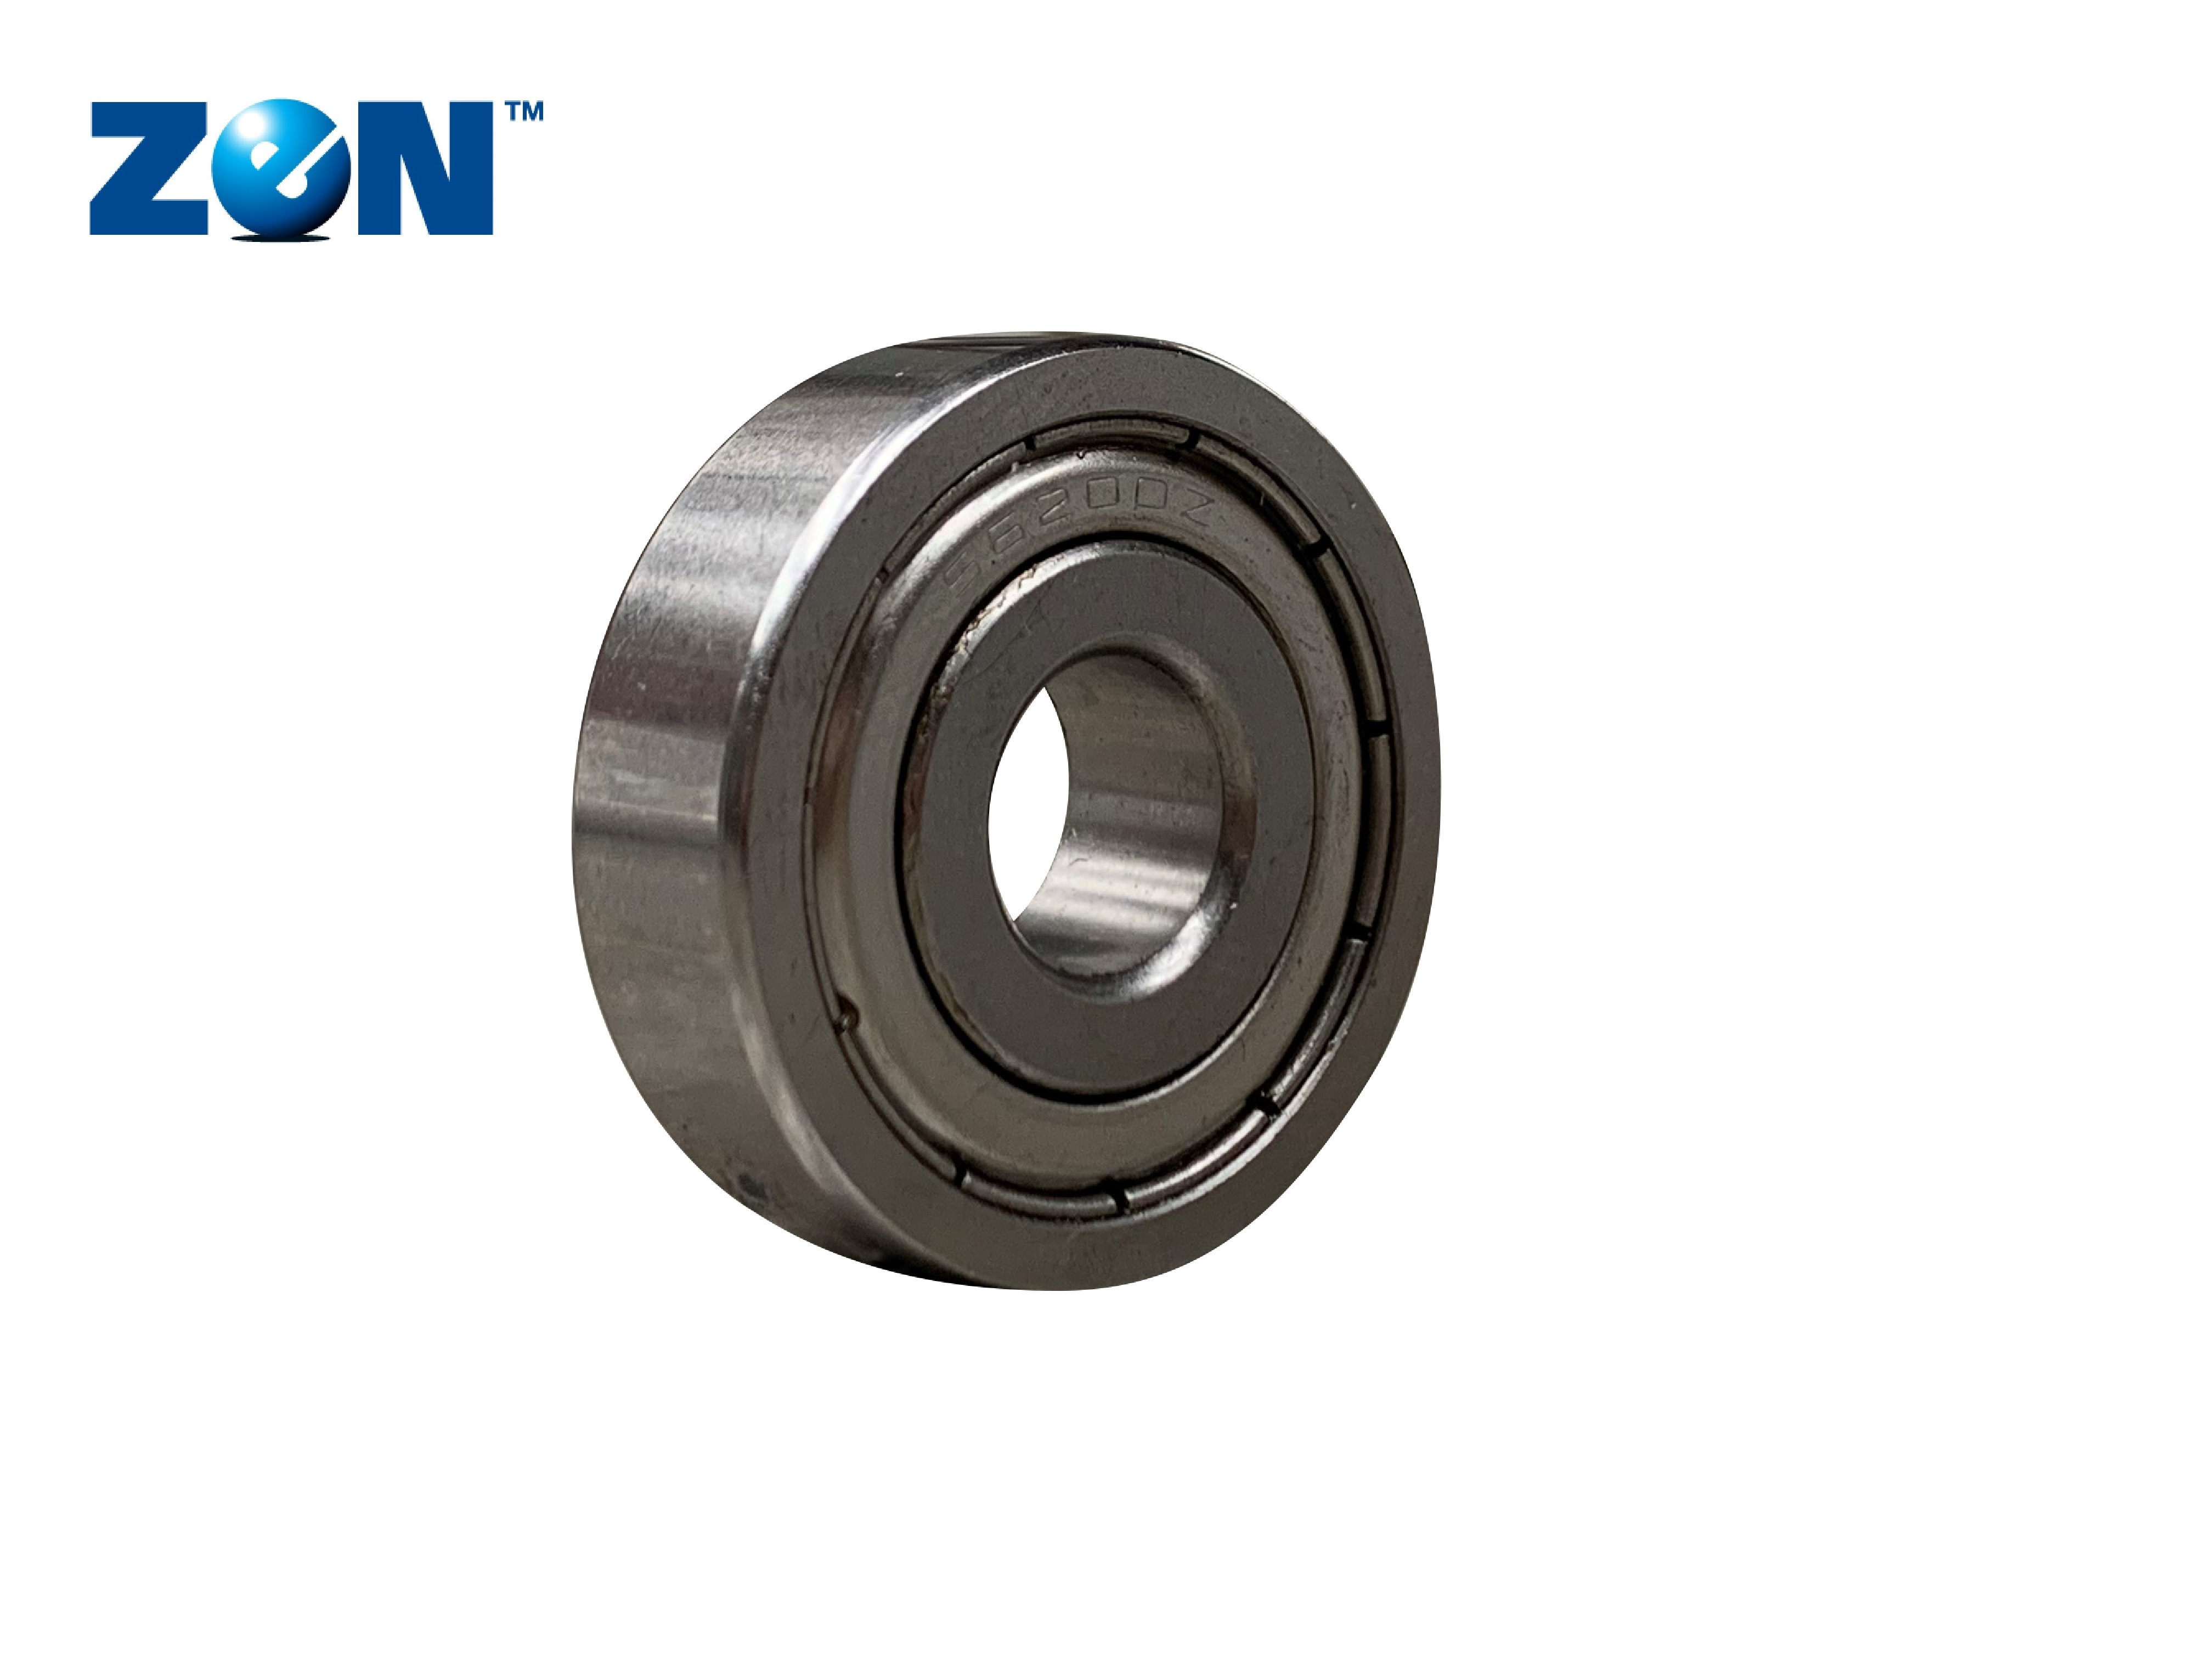 ZEN S6008-2Z Stainless Steel Shielded Ball Bearing 40mm x 68mm x 15mm